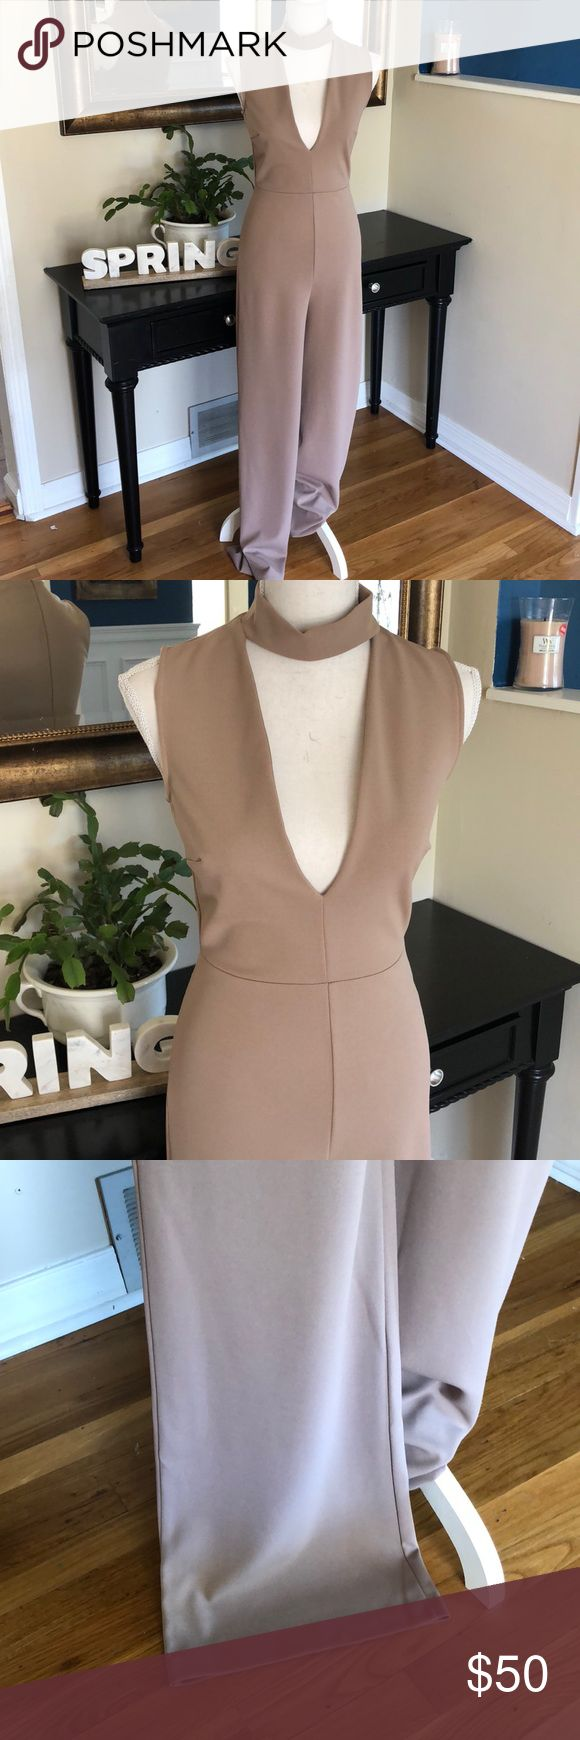 Lulu's Romper - Nude Stunning in person, this flattering romper can be dressed up or down. I wore it one time to a wedding with heels. Zip up back and built in choker neckline. Very sexy and comfortable! Lulu's Pants Jumpsuits & Rompers